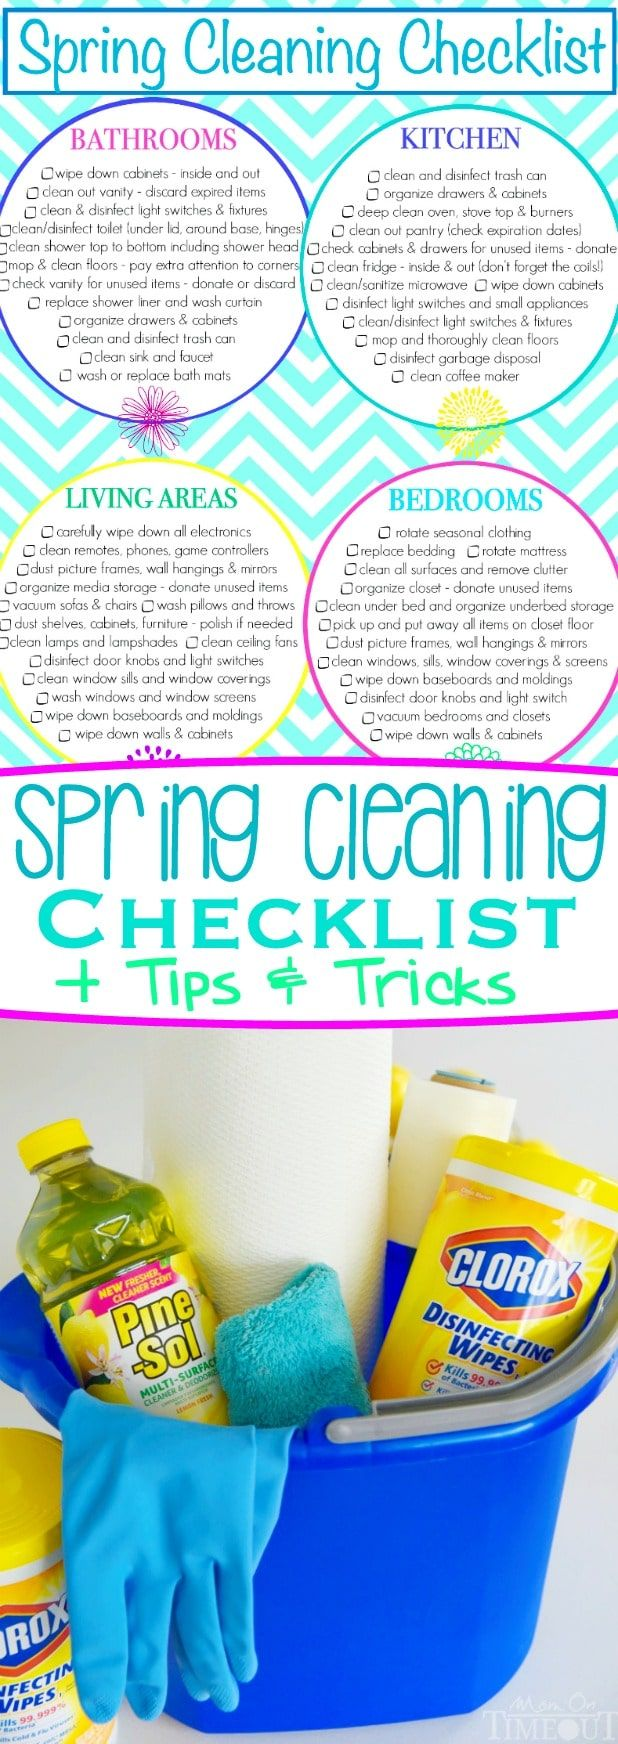 Spring Cleaning Tips best 25+ spring cleaning ideas on pinterest | spring cleaning tips